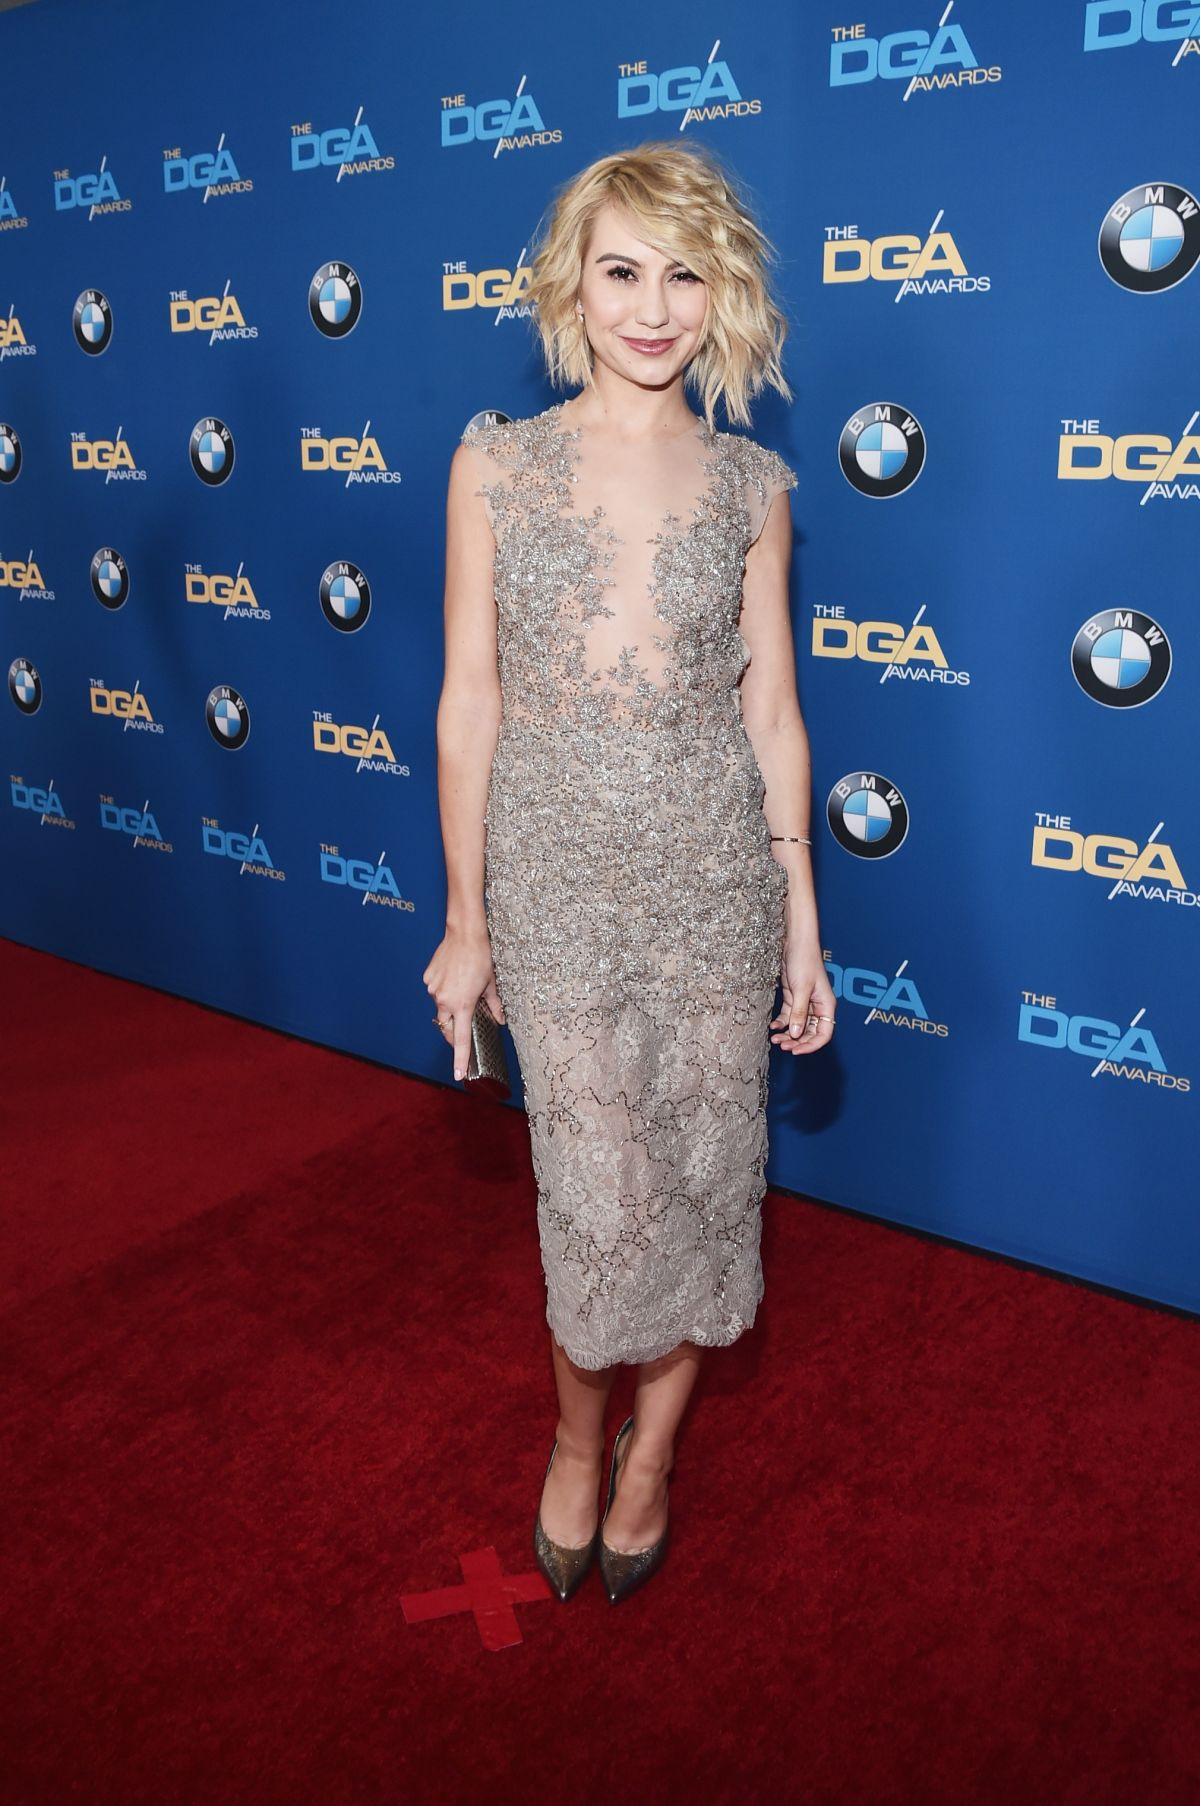 CHELSEA KANE at 68th Annual Directors Guild of America Awards in Los Angeles 02/06/2016